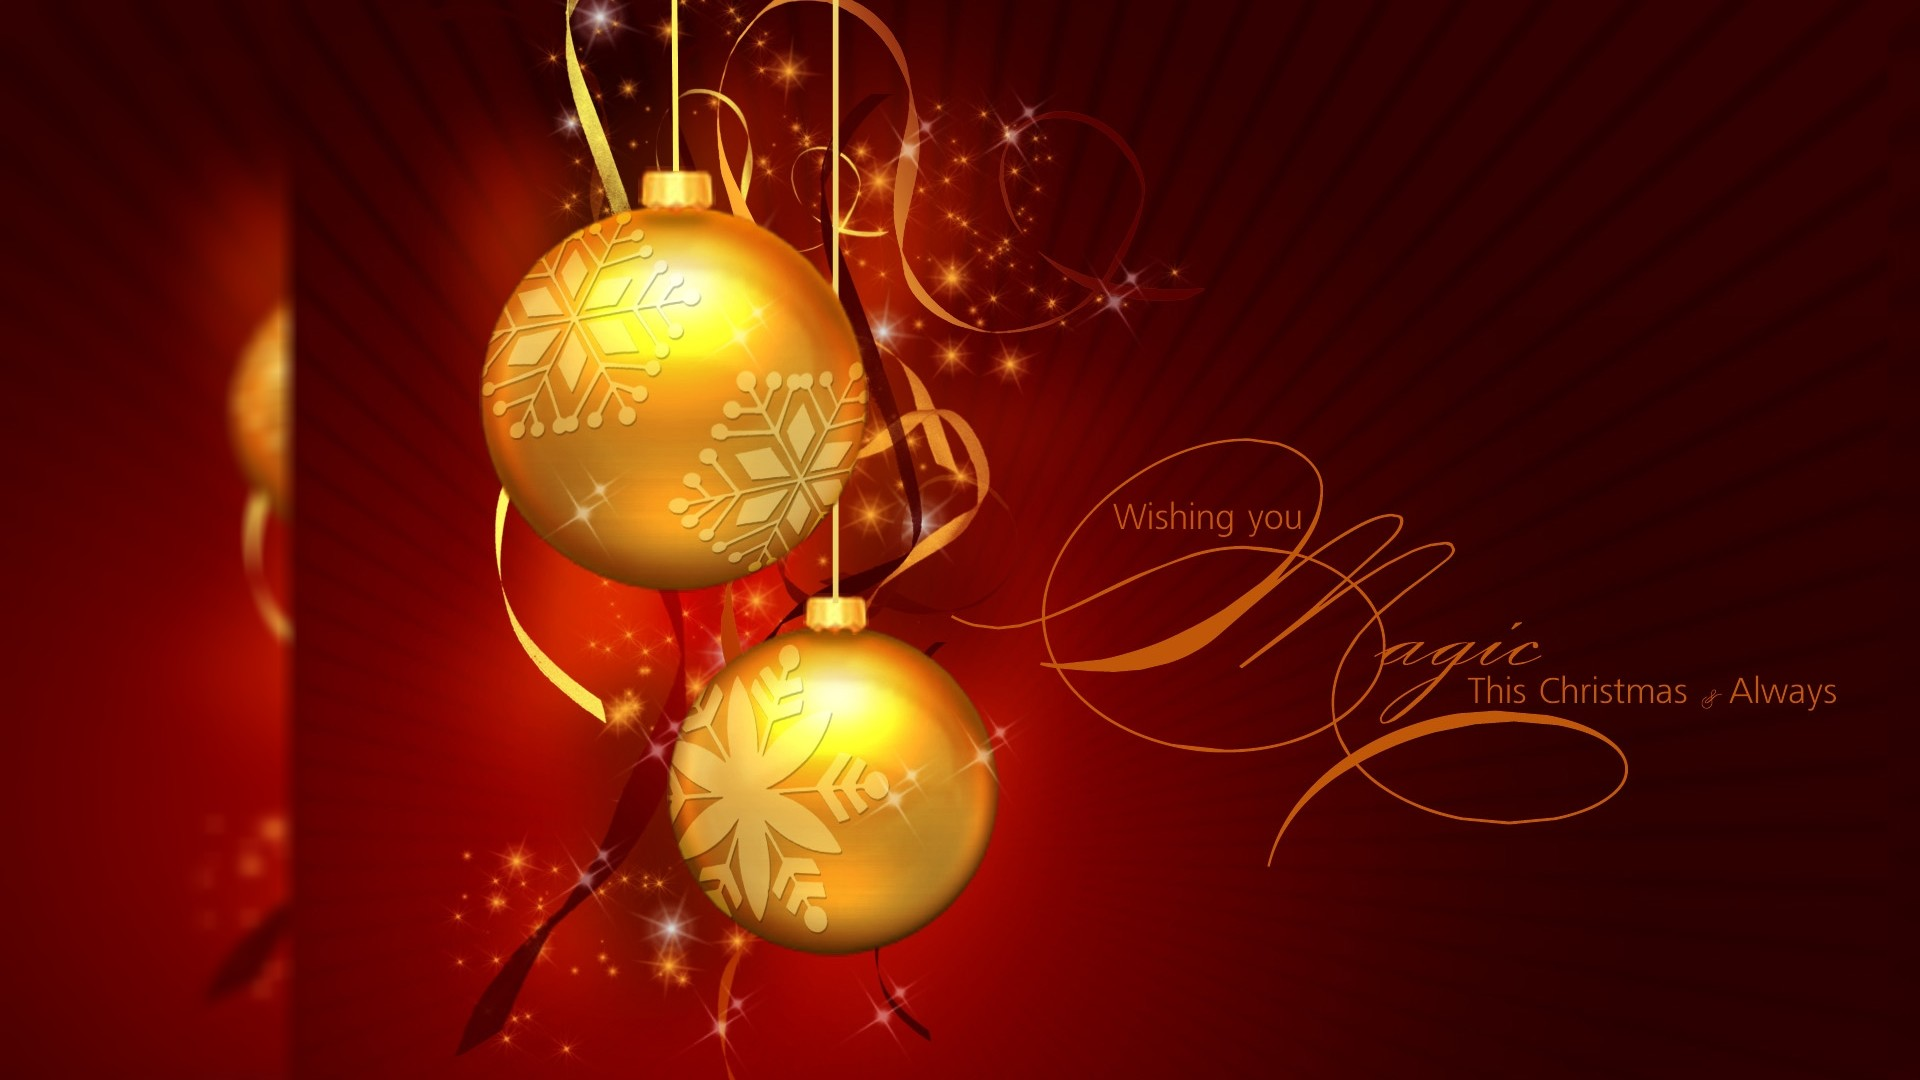 1920x1080 desktop christmas wallpaper 2015 - Grasscloth Wallpaper